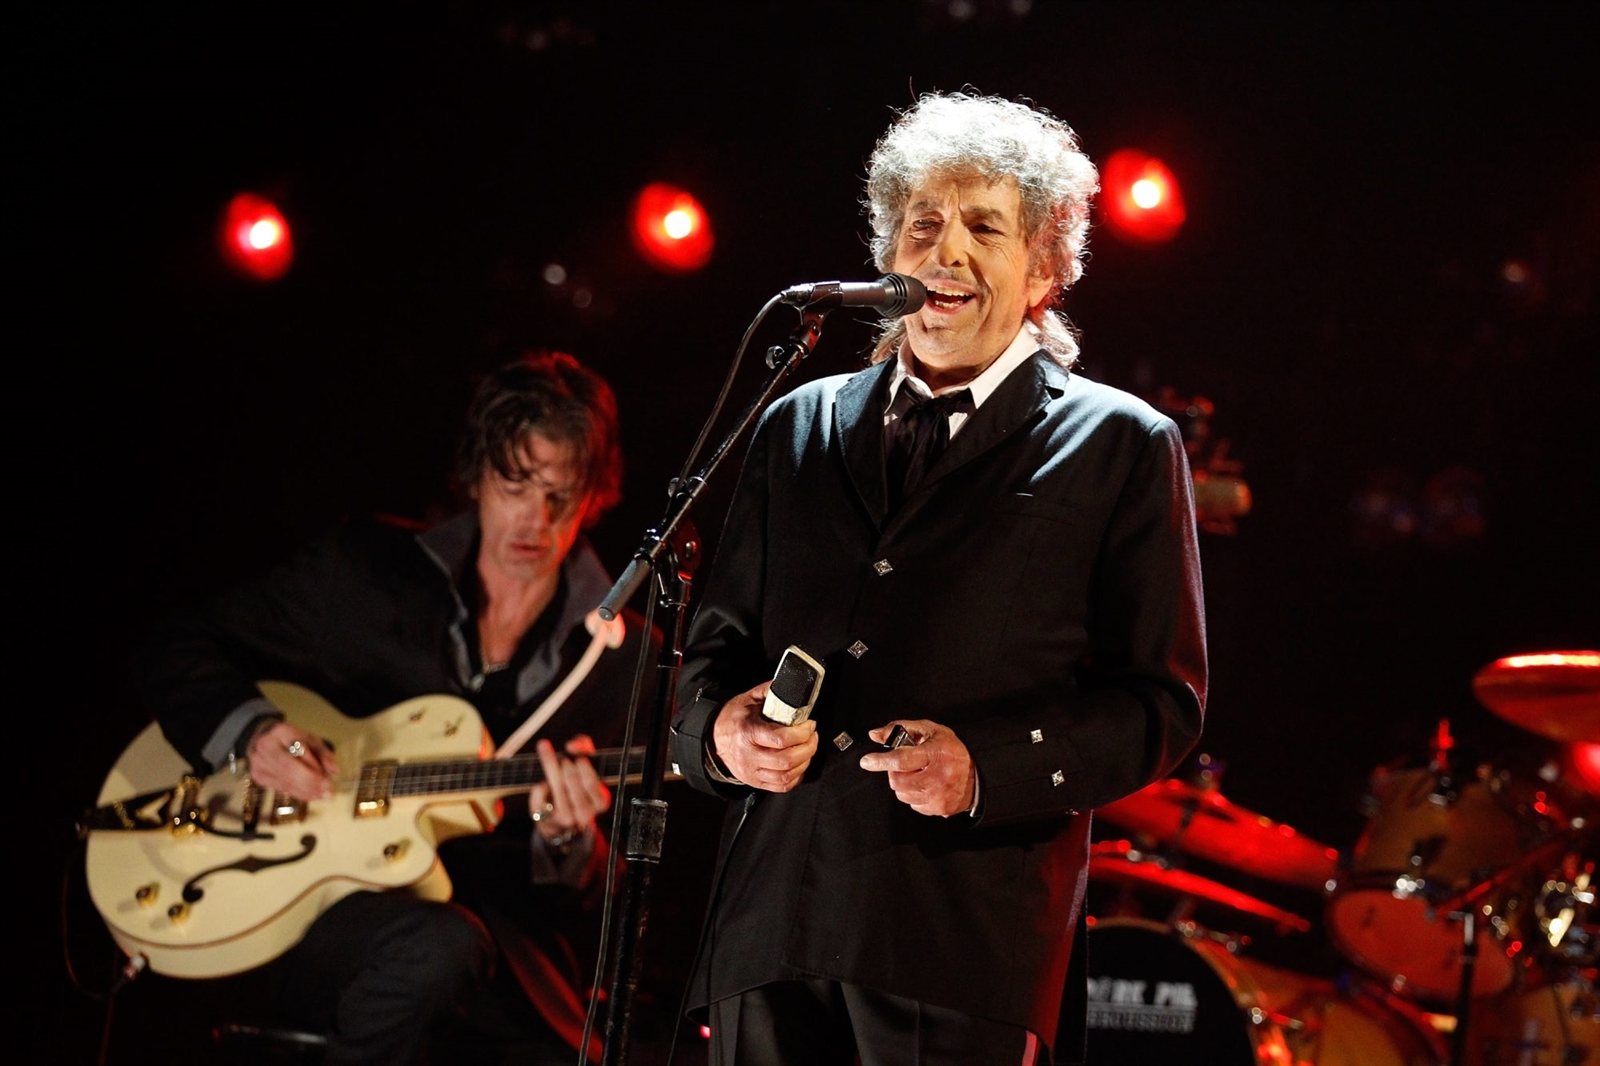 Bob Dylan played the fair in 2002.